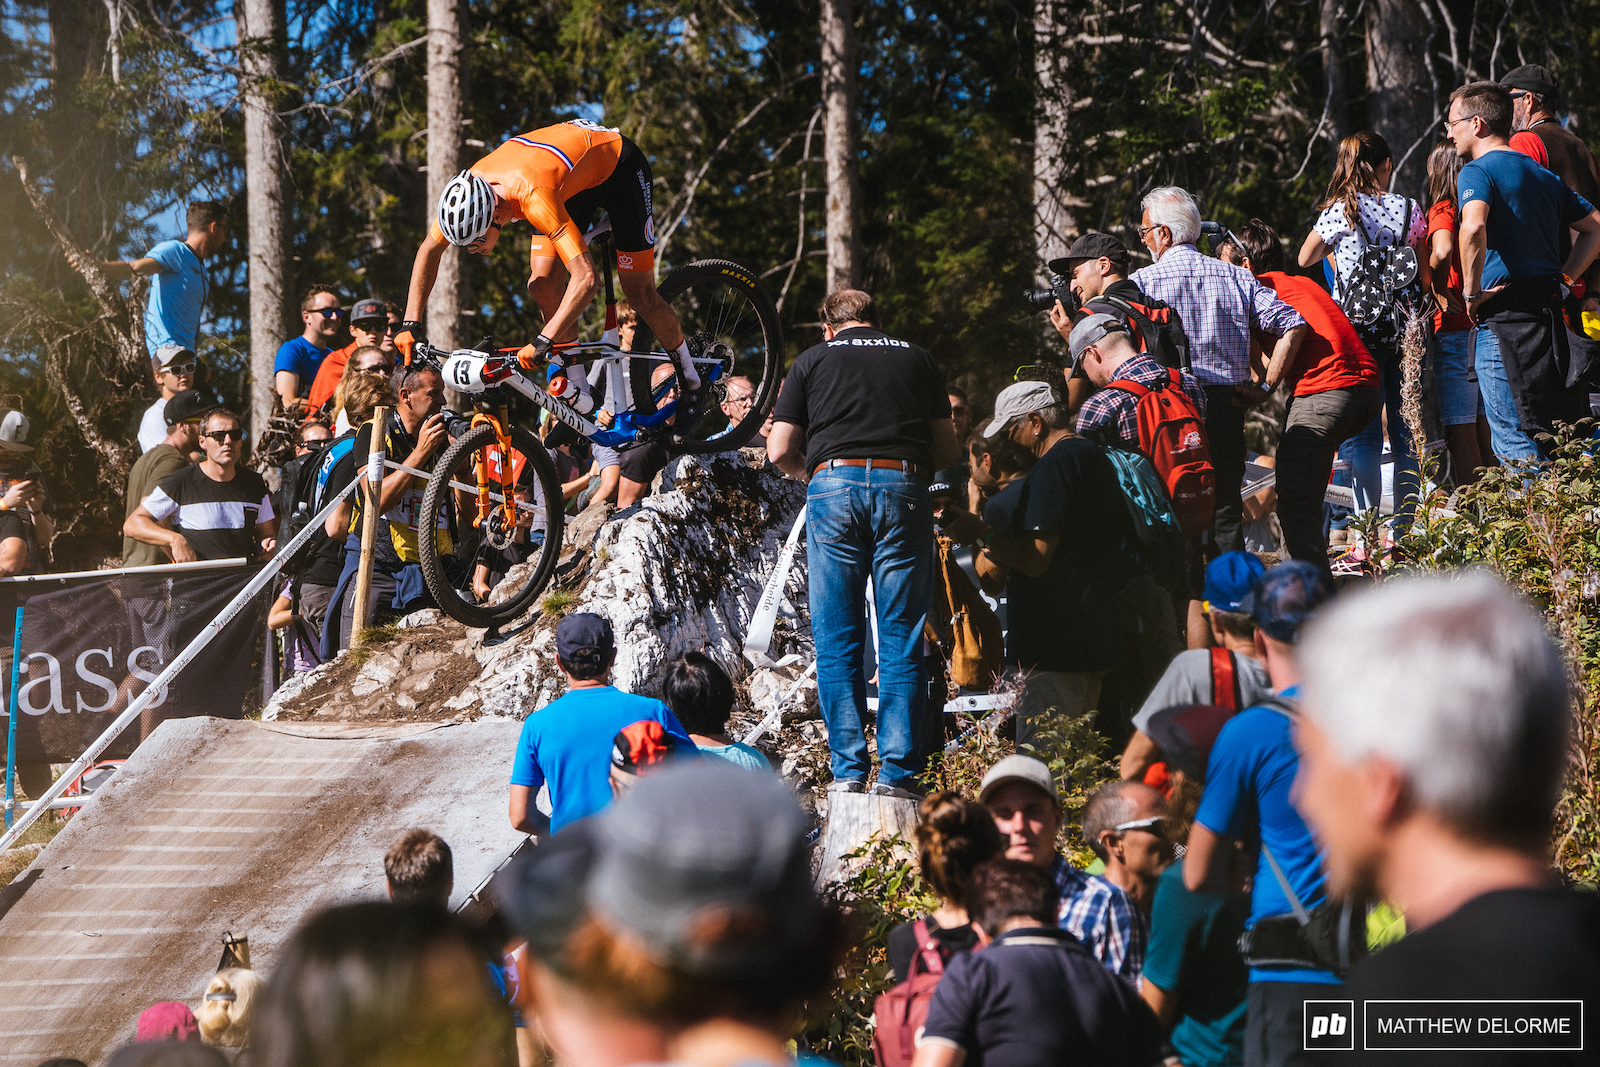 Mathieu van der Poel had a solid ride from the second row. He took third today.